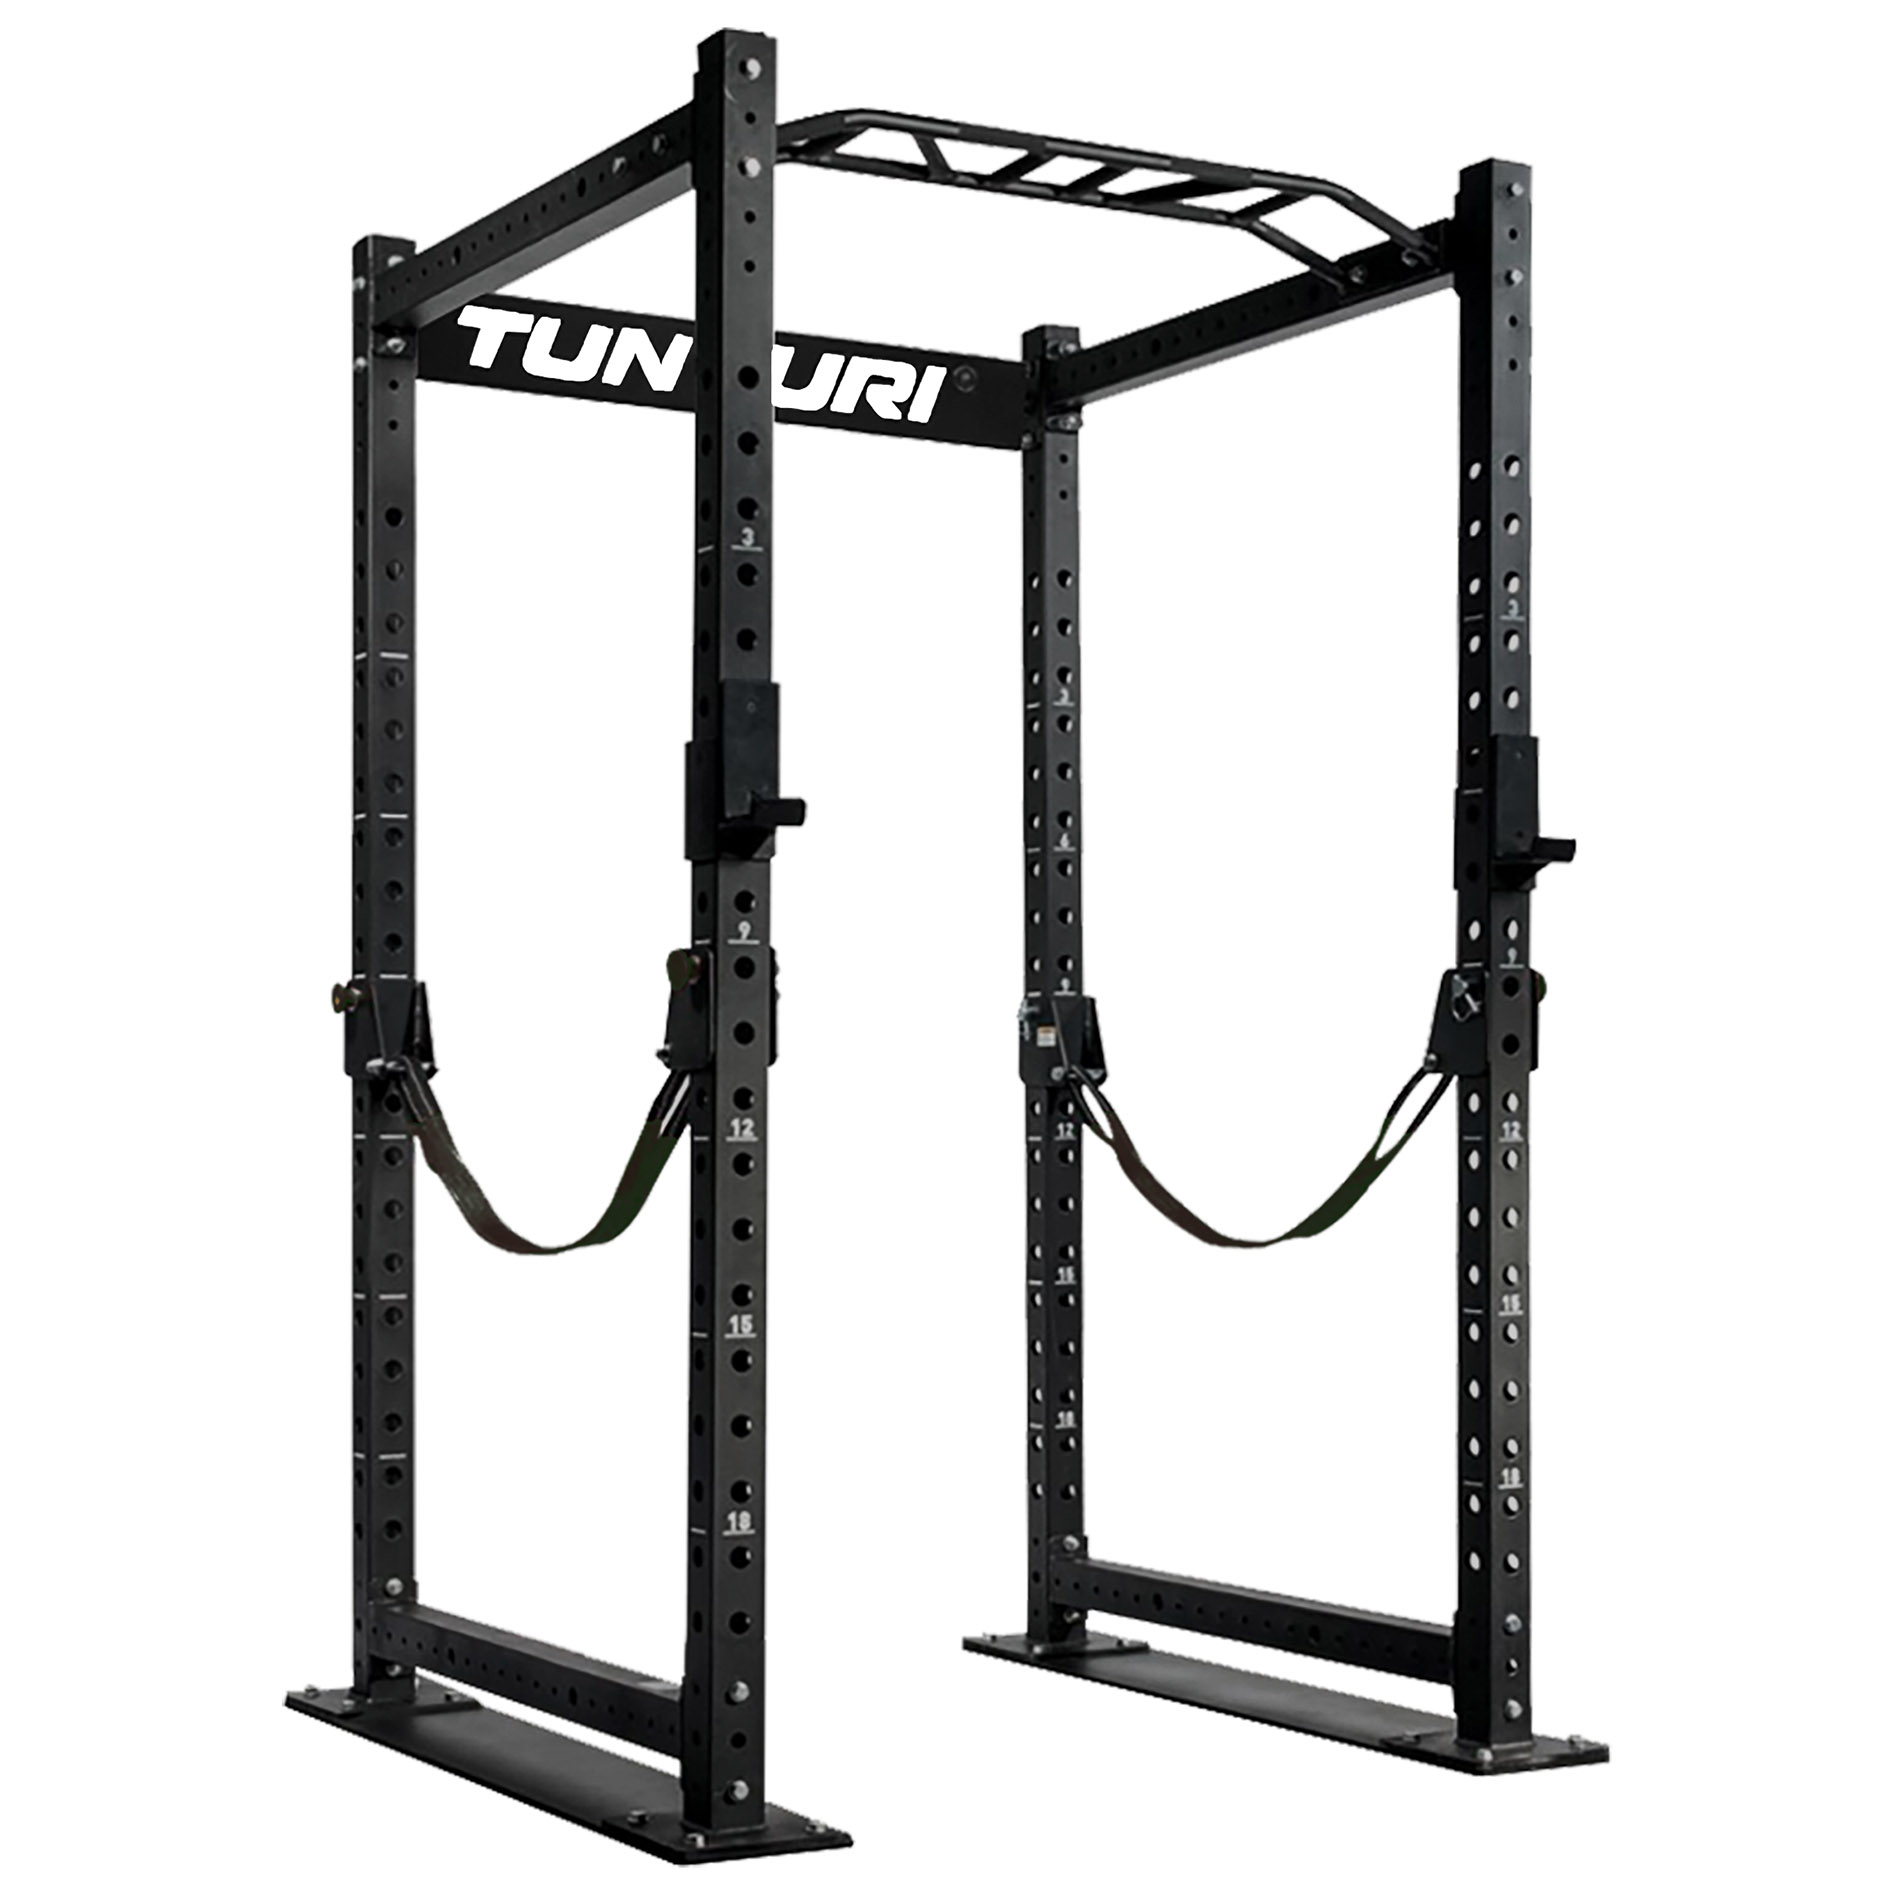 Tunturi RC20 Cross Fit Rack - J Haken - Paar